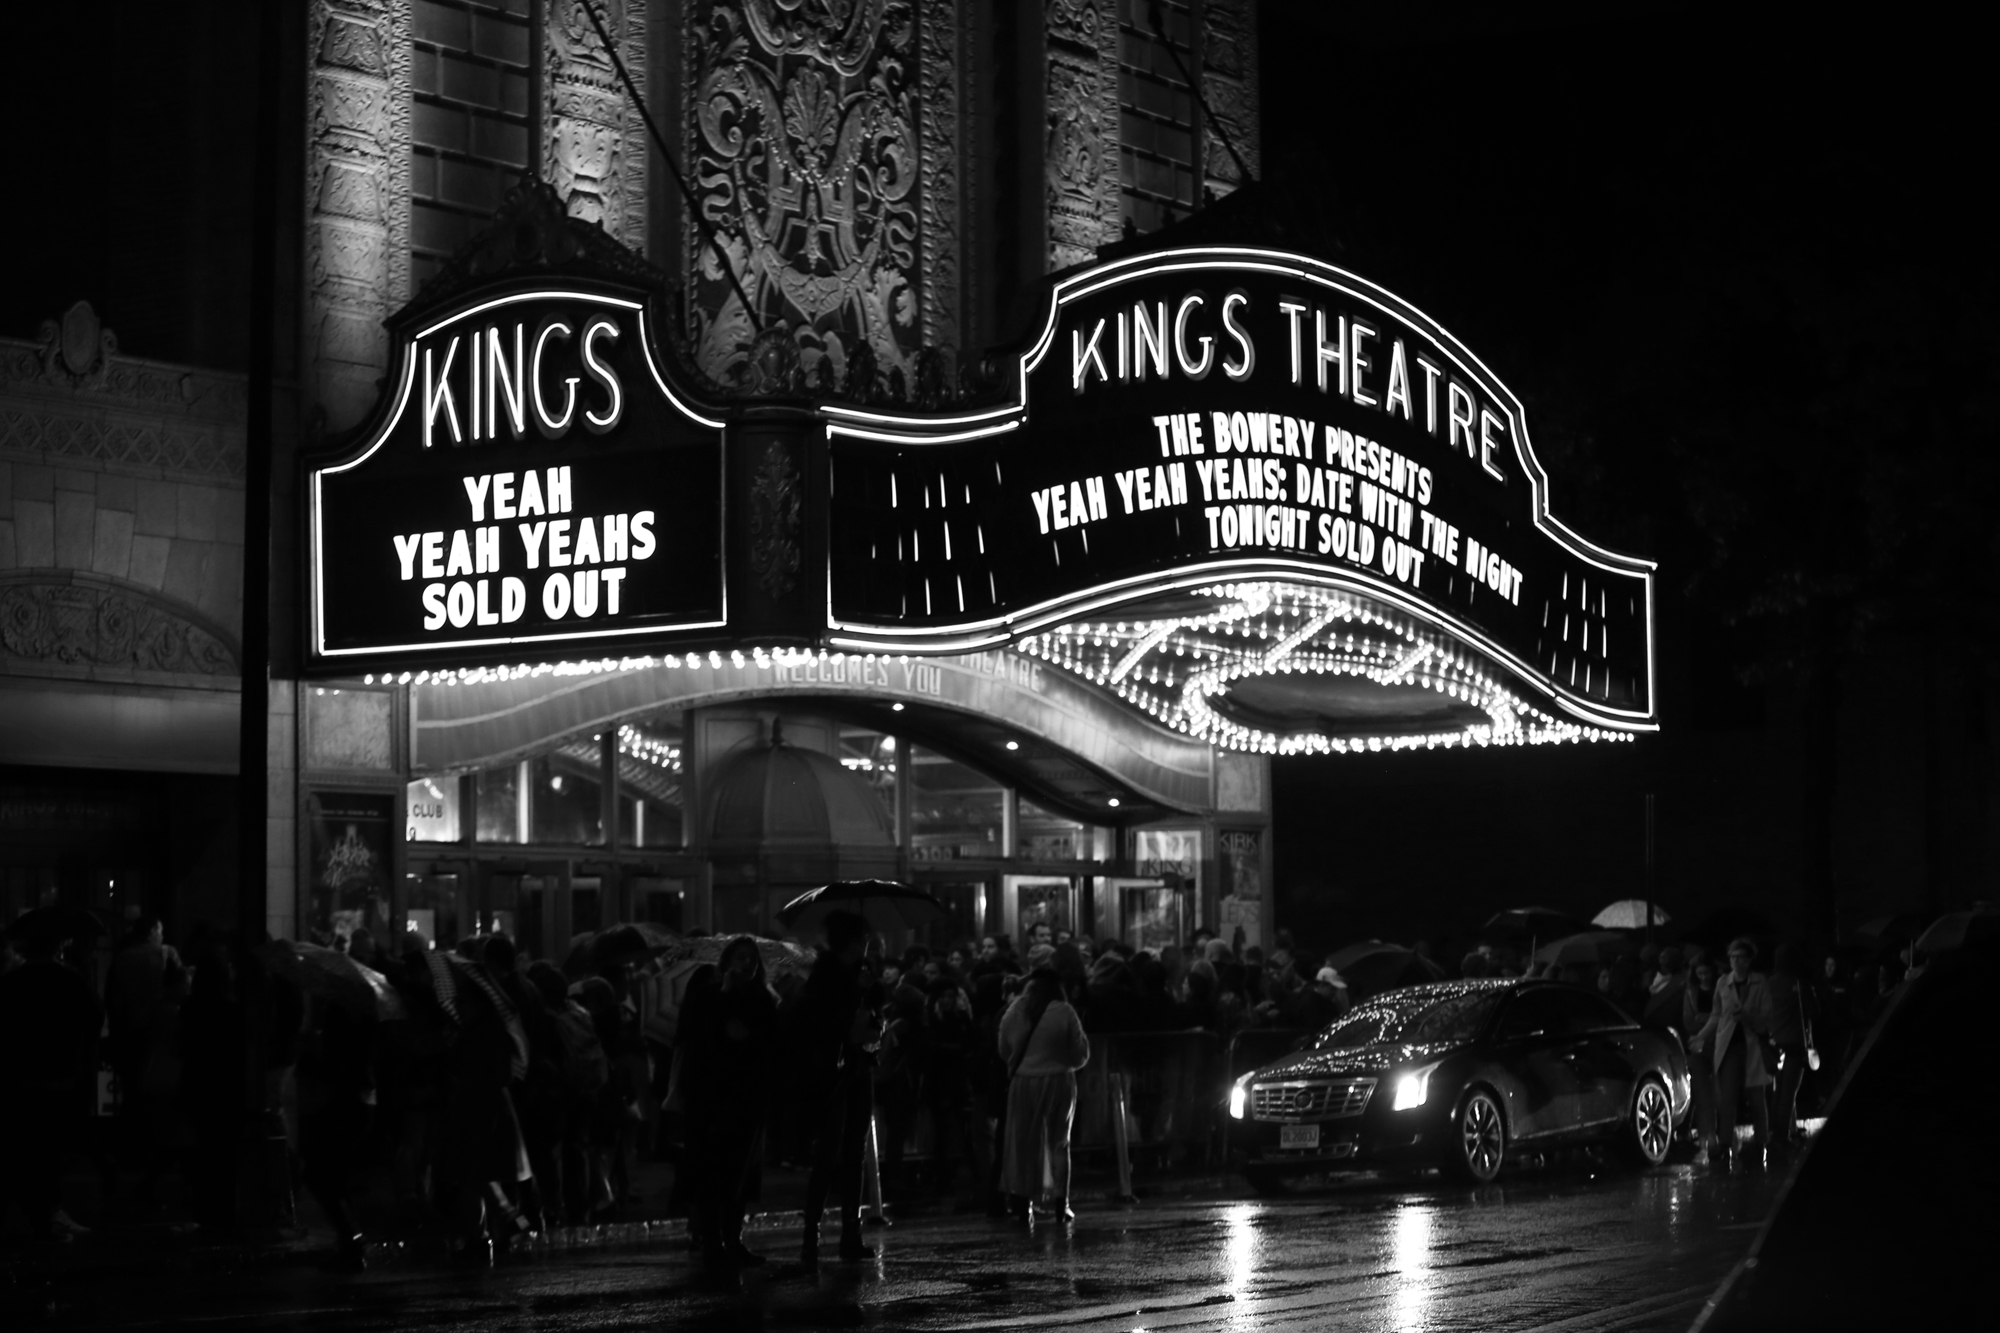 kings theatre killian young 1 Live Review: Yeah Yeahs Yeahs Return to NYC for First Hometown Show in Four Years (11/7)